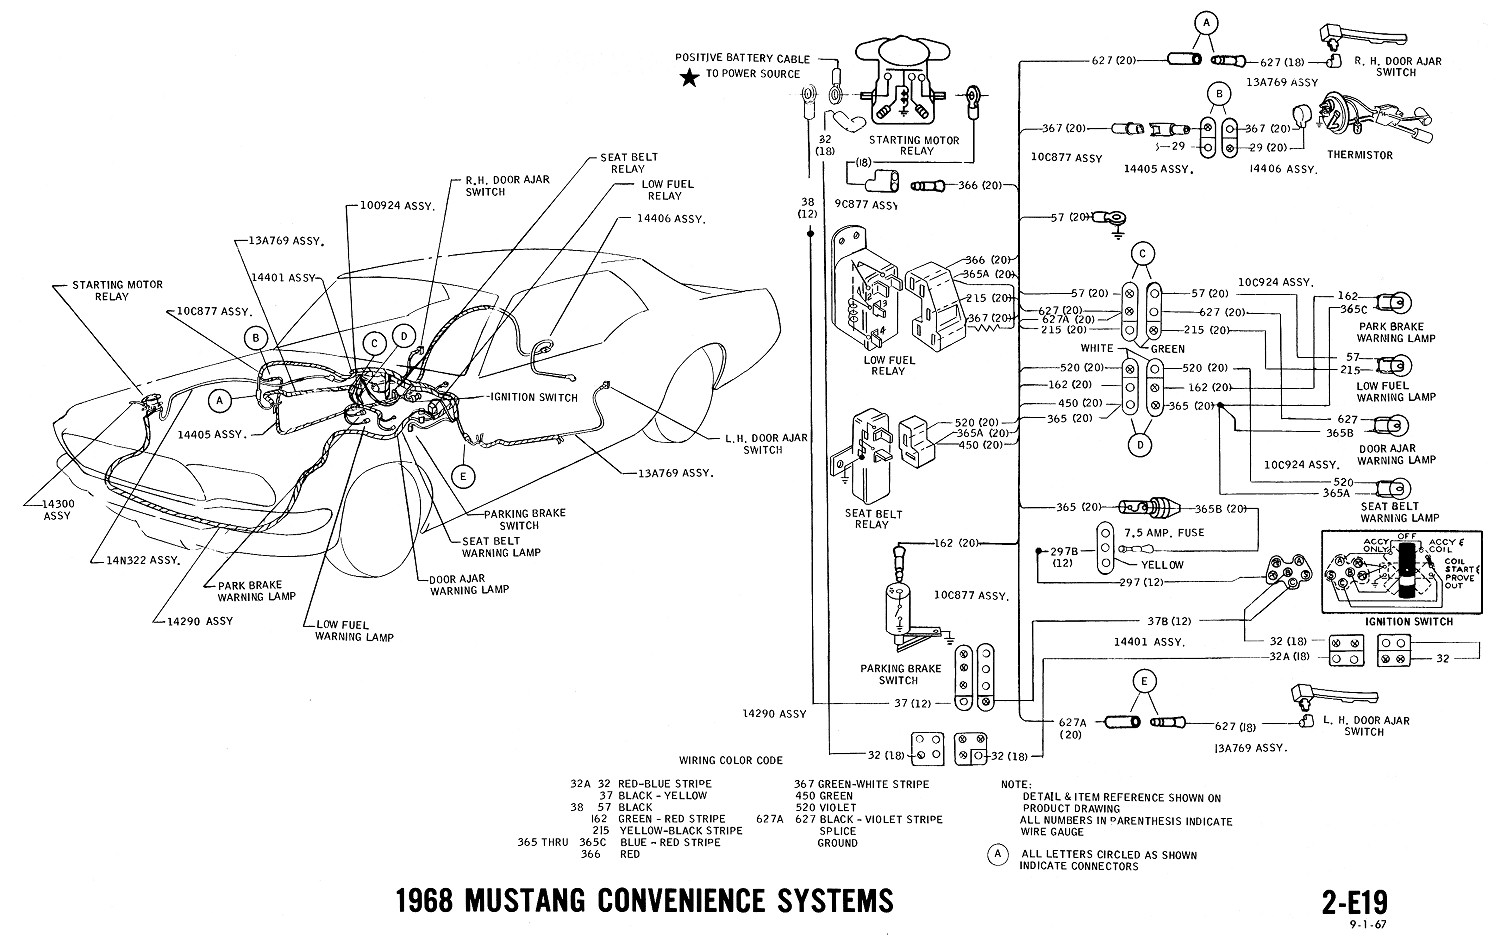 1968 Master Wiring Diagram. NEUTRAL SWITCH. E20 – NEUTRAL SWITCH.  CONVENIENCE SYSTEMS